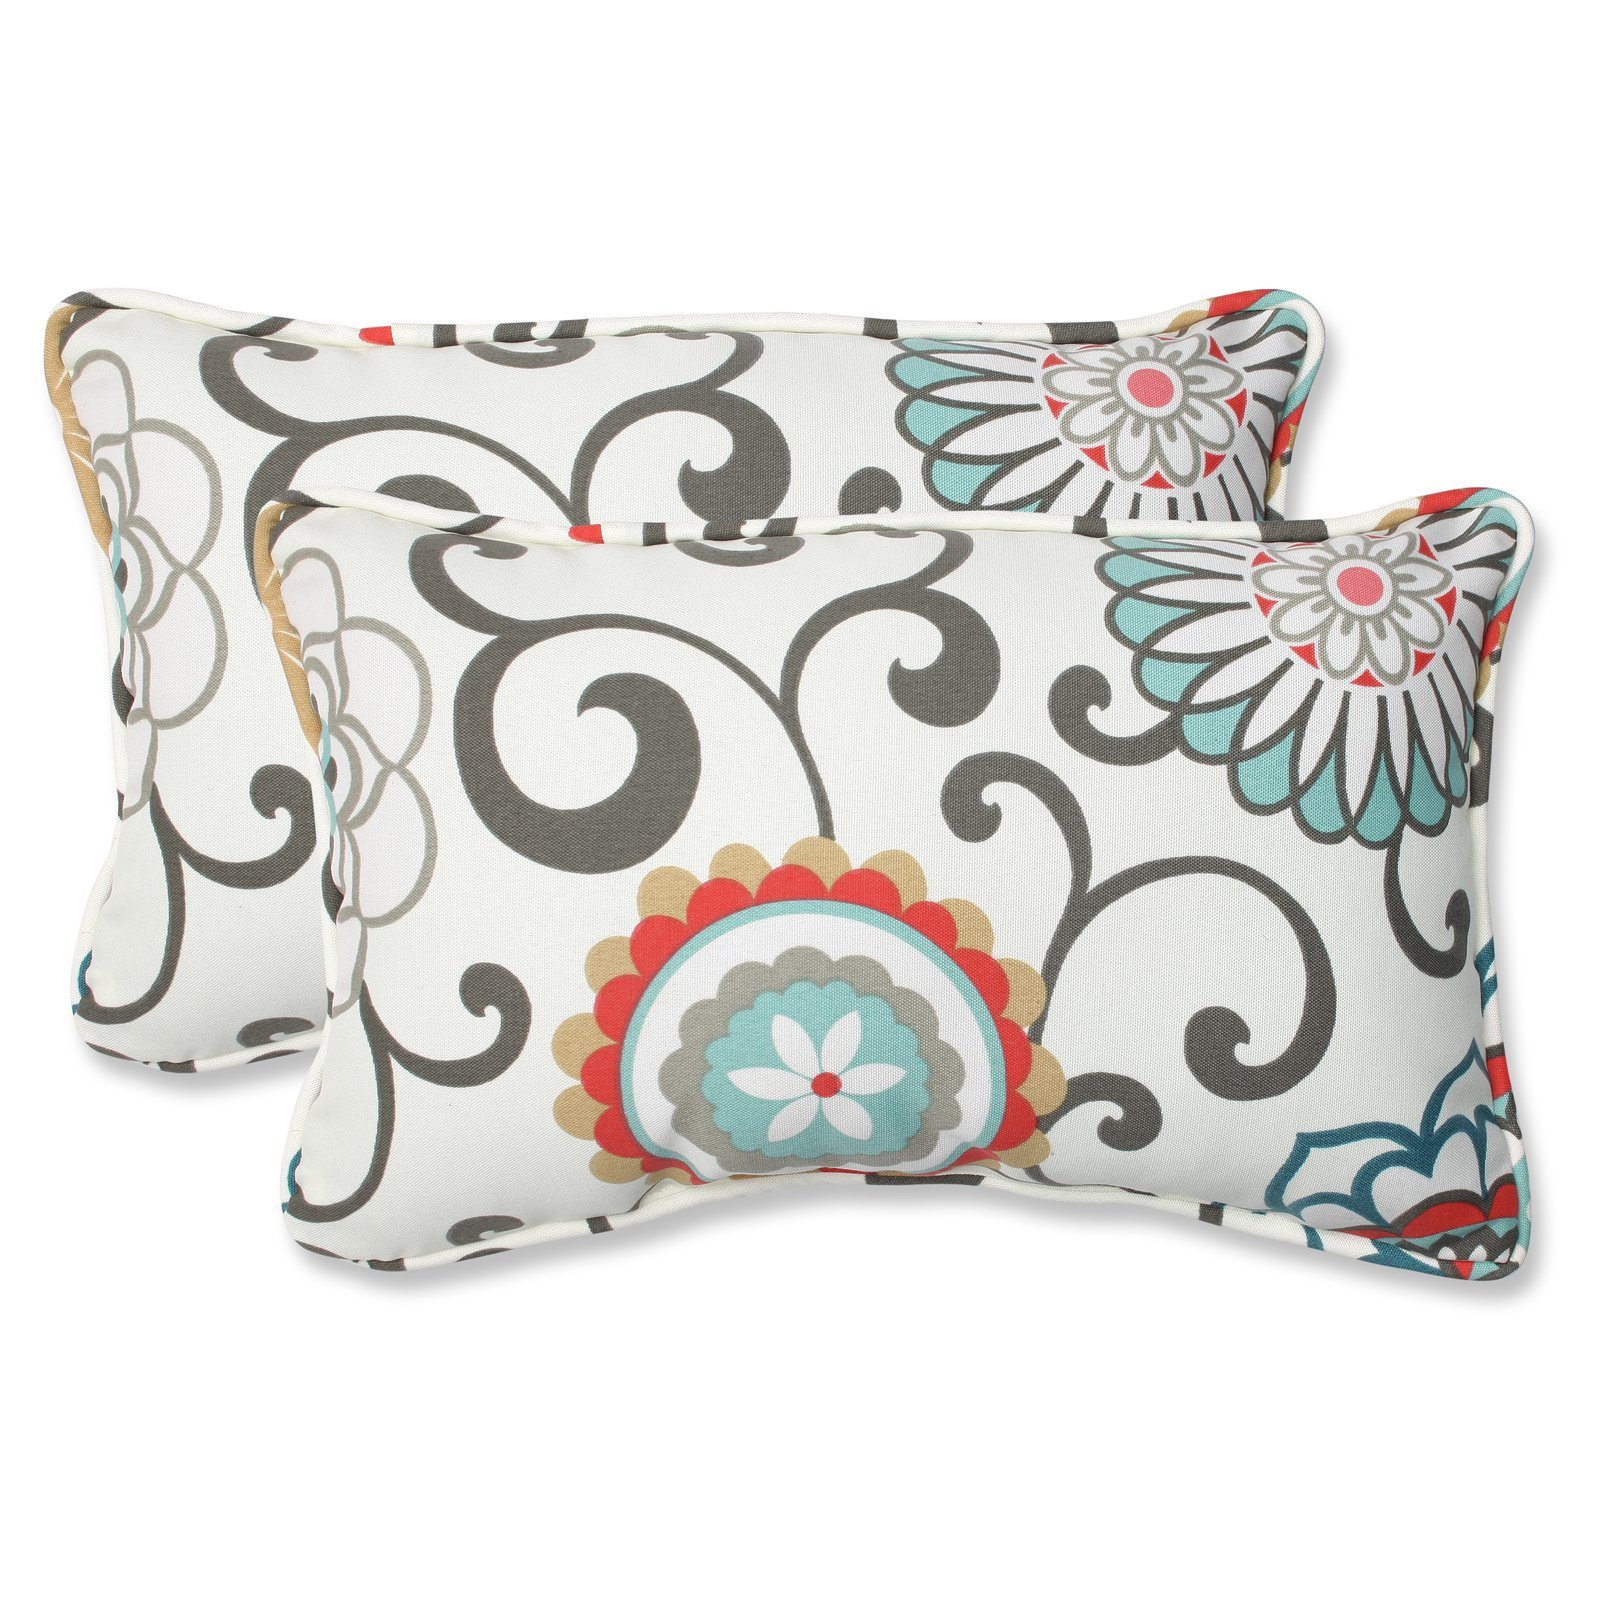 Pillow Perfect Outdoor/ Indoor Pom Pom Play Peachtini Rectangular Throw Pillow (Set of 2)